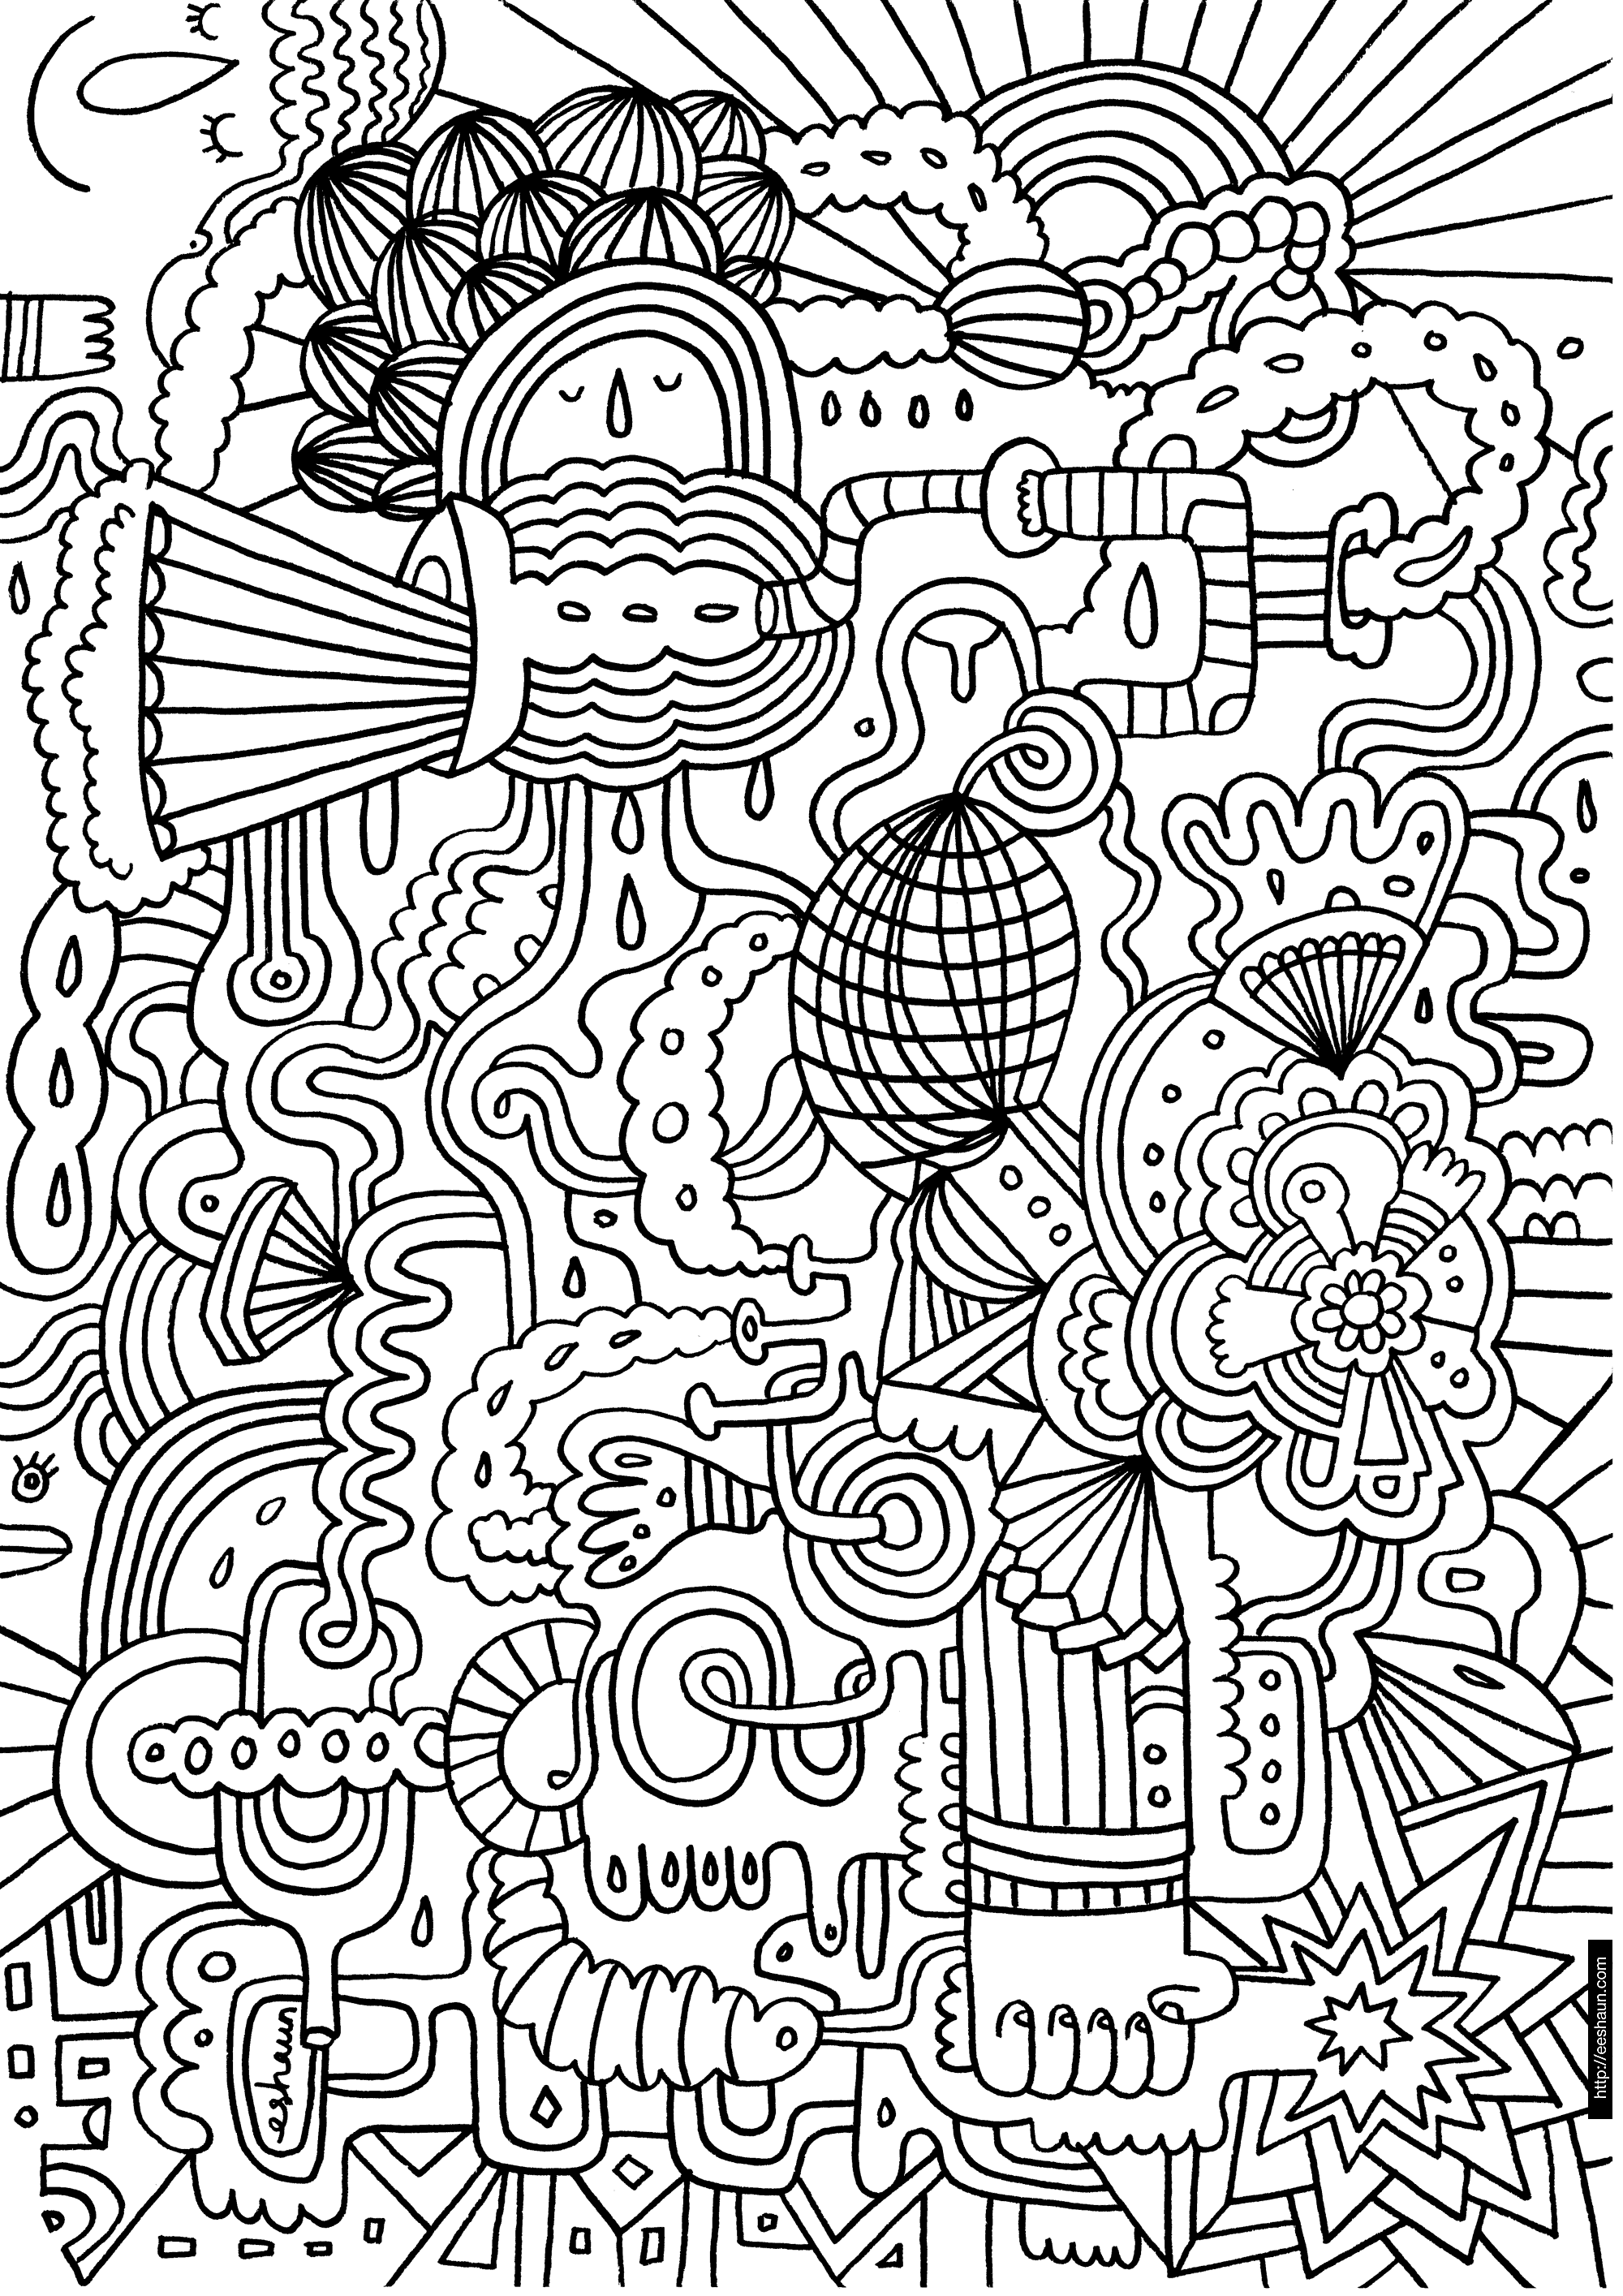 Free Crayola Coloring Pages Printable | Learning Printable